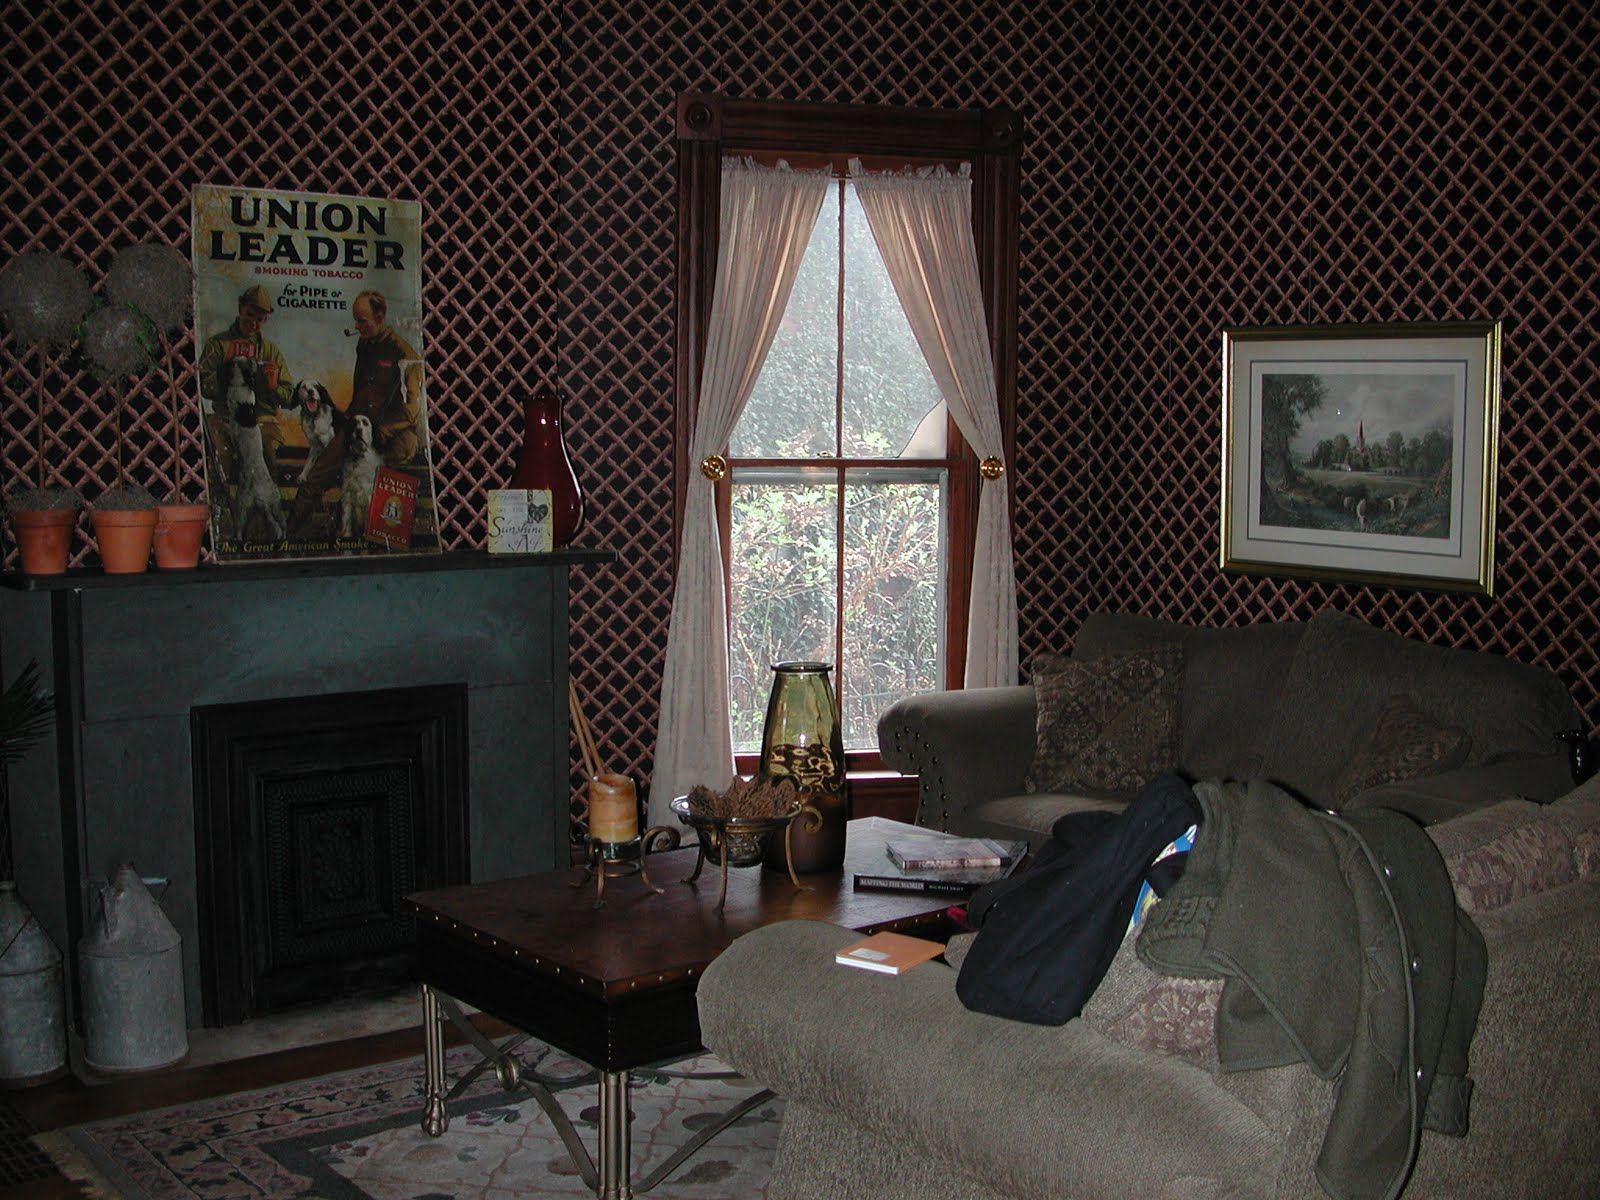 kane blog picz: Is Wallpaper More Expensive Than Paint